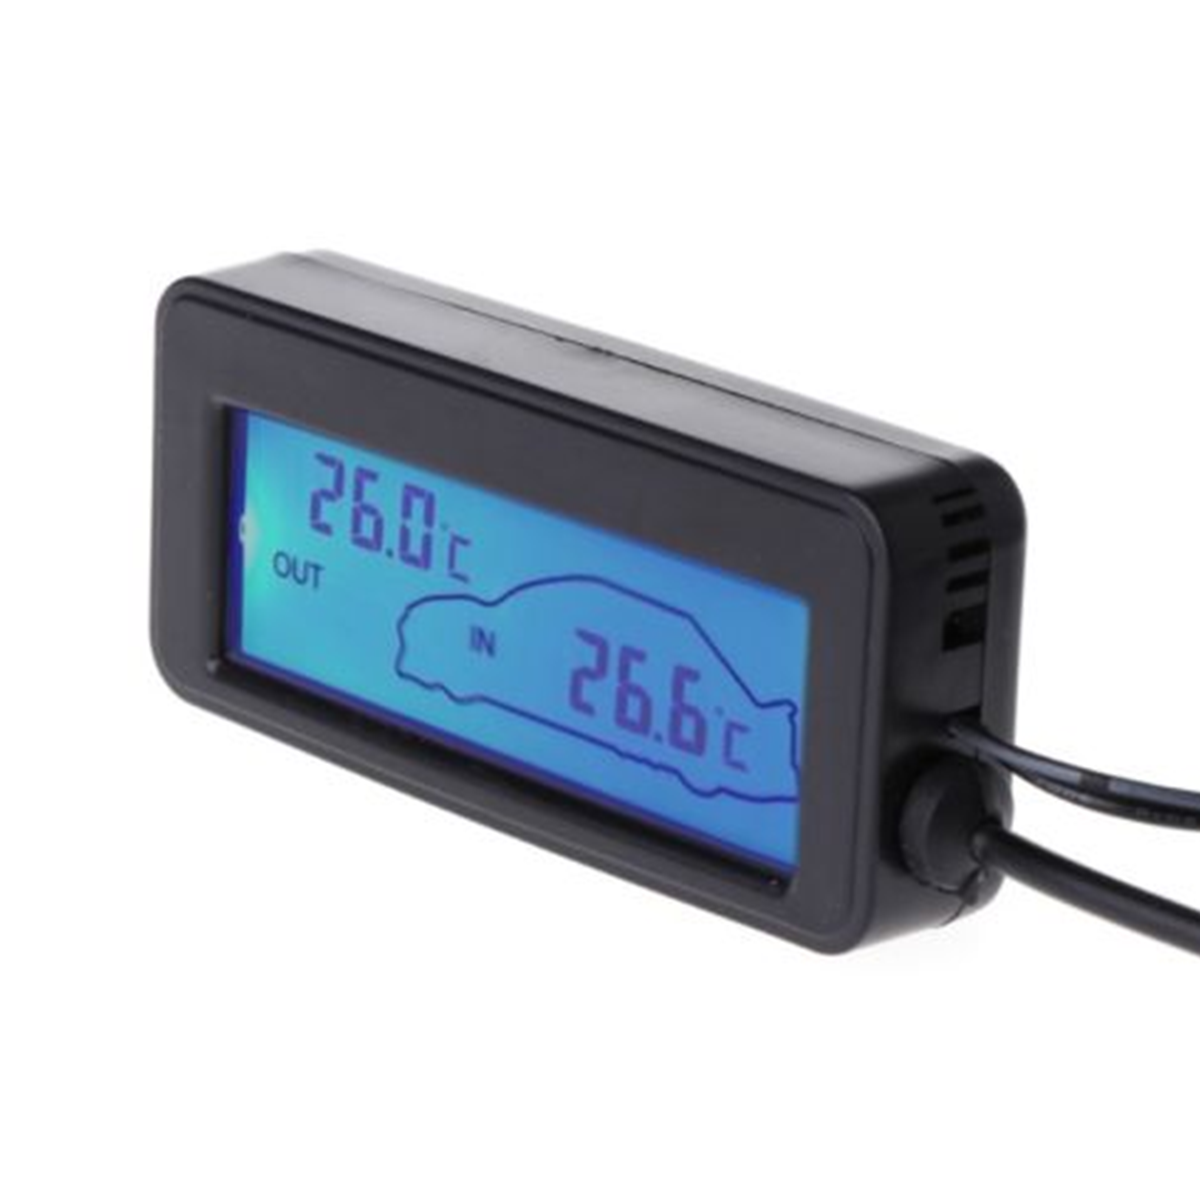 1PC Mini LCD Display Digital Thermometer Car Inter/Exter Thermometer Embedded Electronic Digital Thermometer dc108 3 0 lcd thermometer